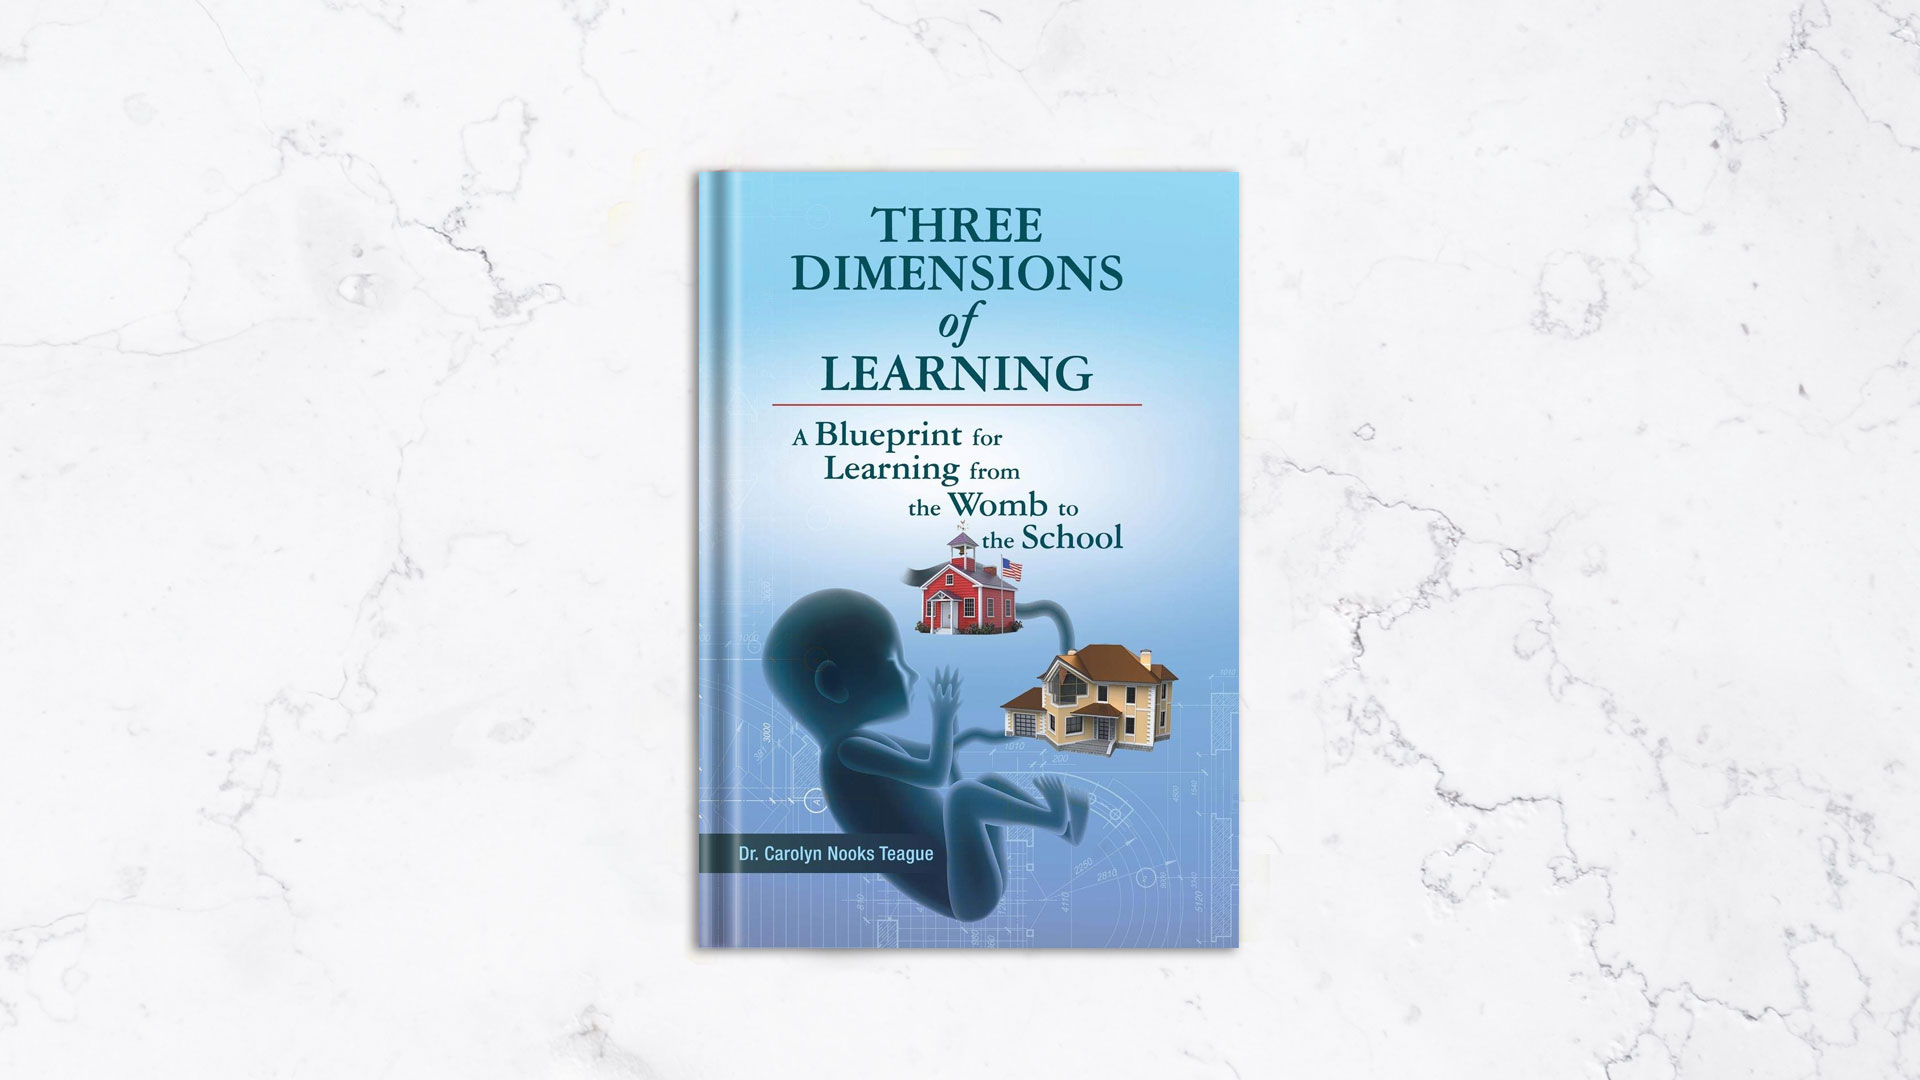 Book-Feature-Three-Dimensions-of-Learning-by-Carolyn-Nooks-Teague banner